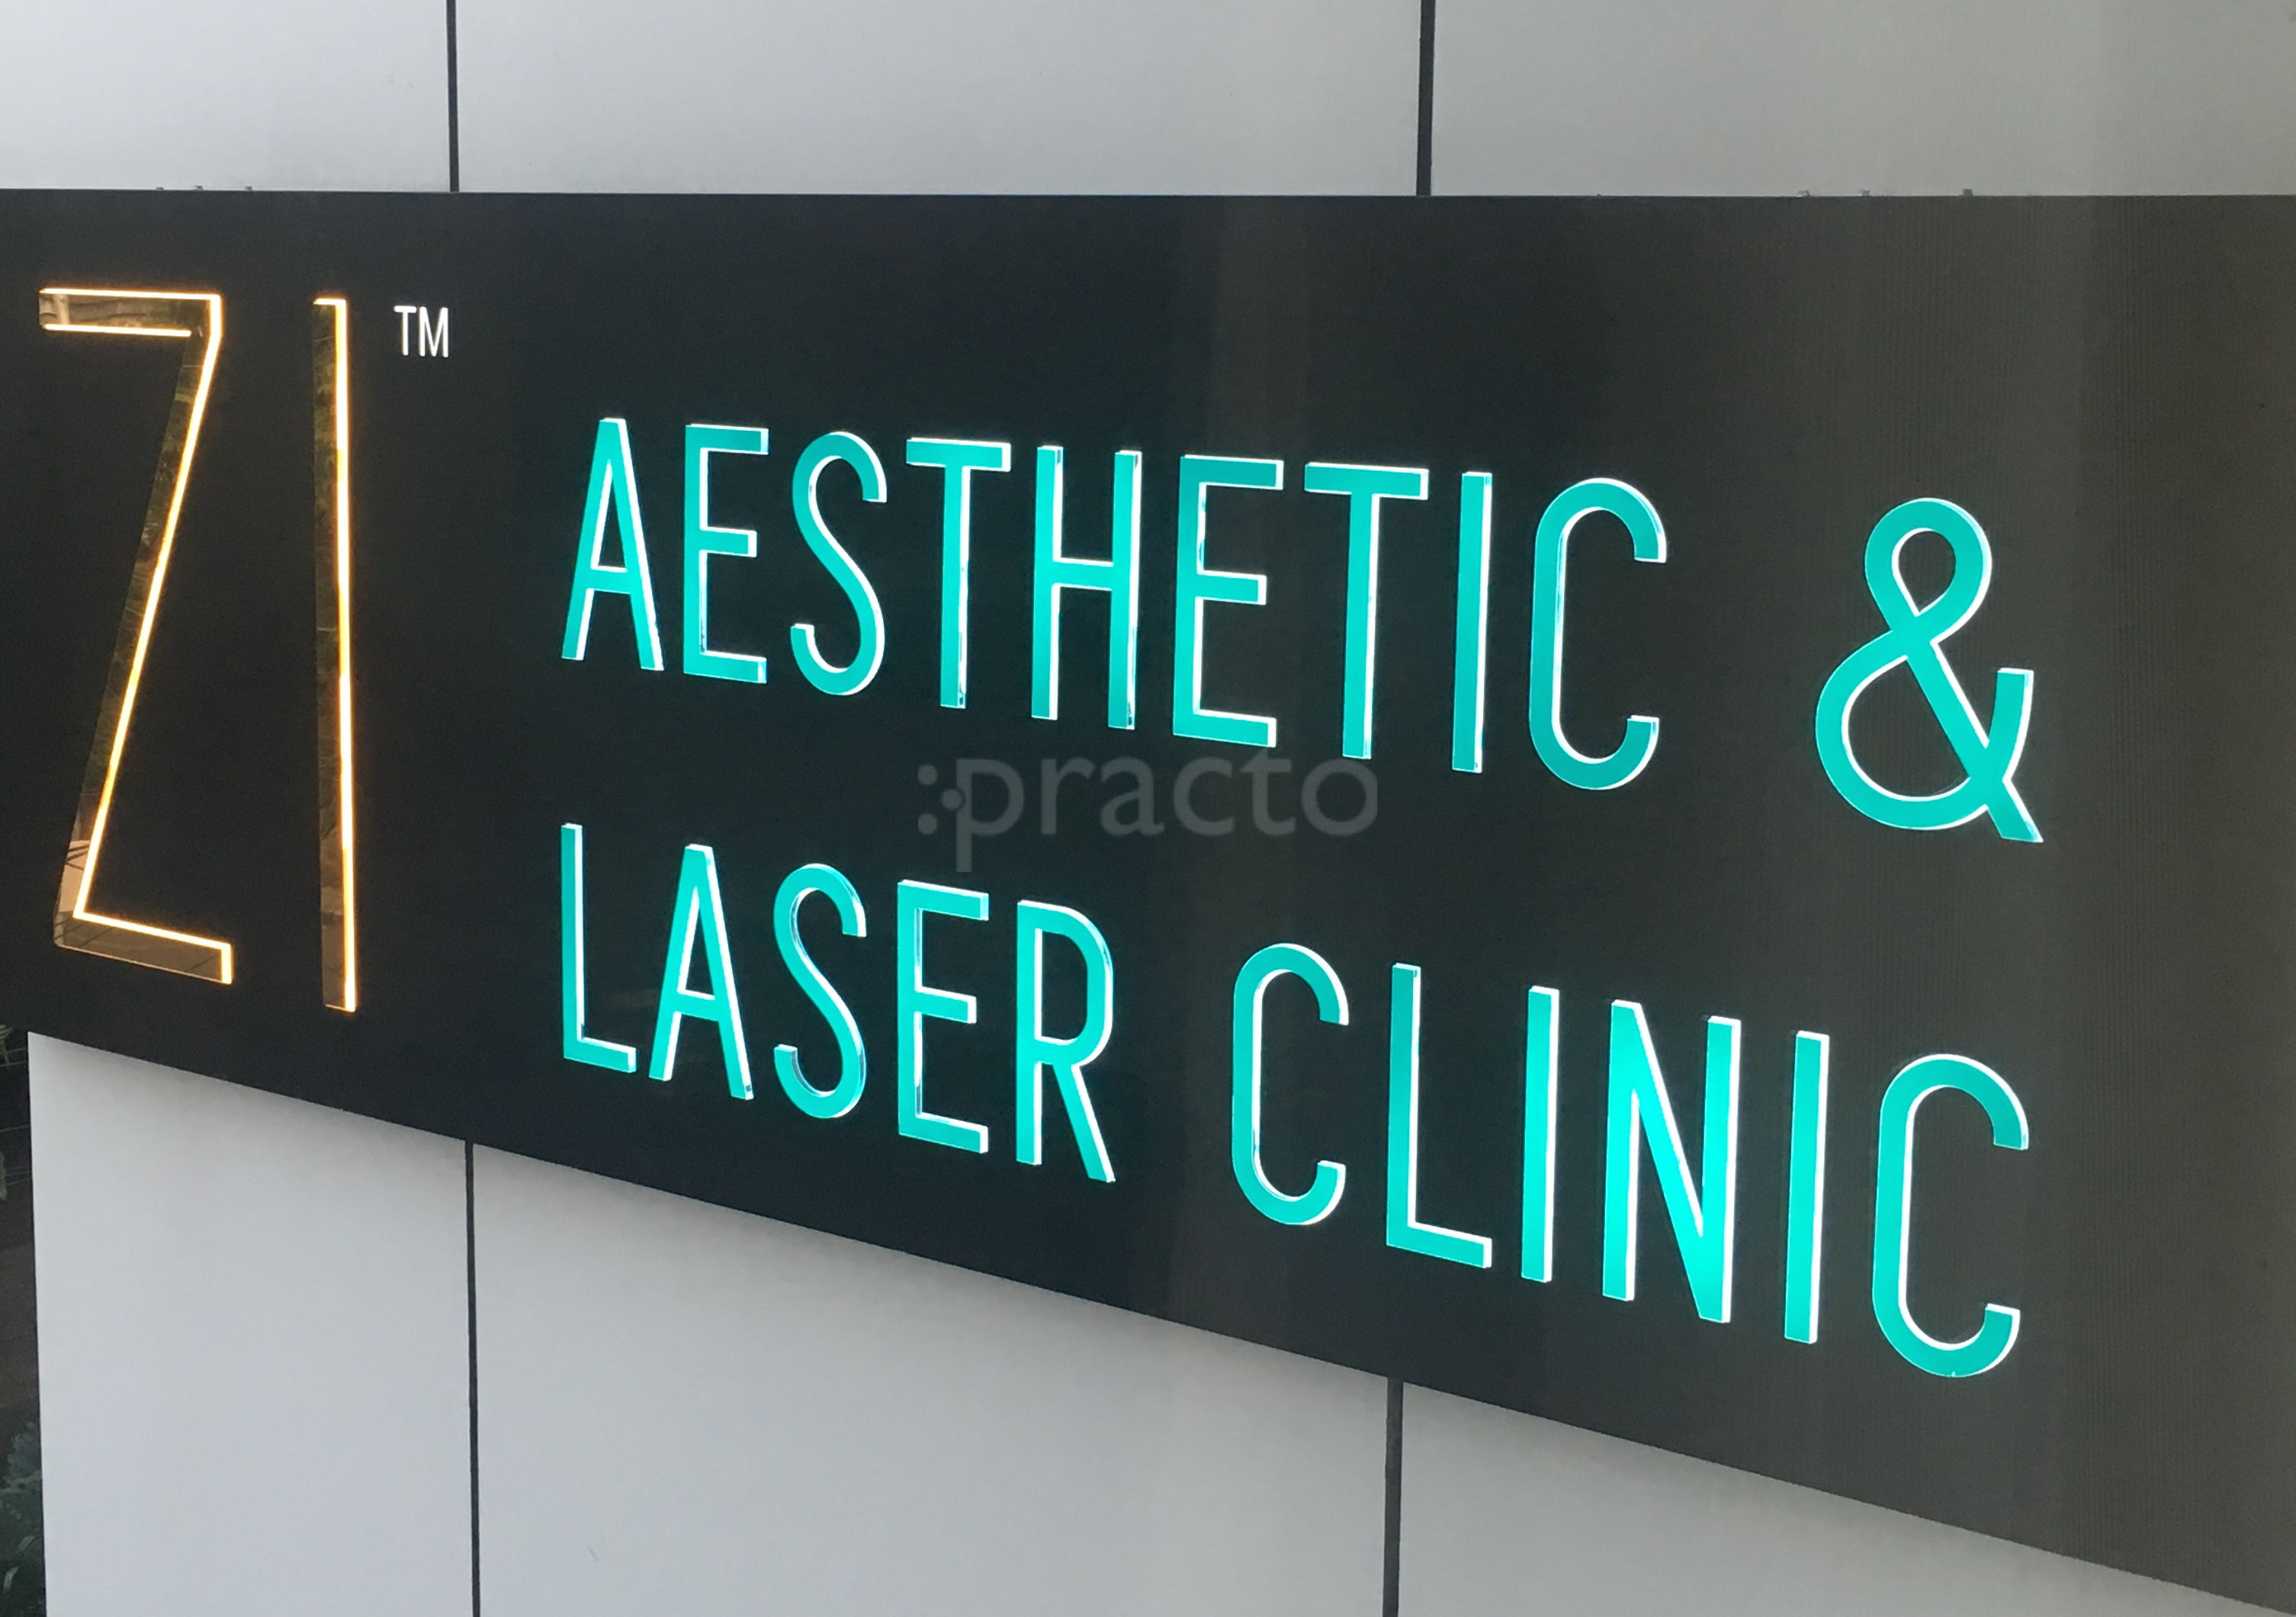 ZI Aesthetic And Laser Clinic